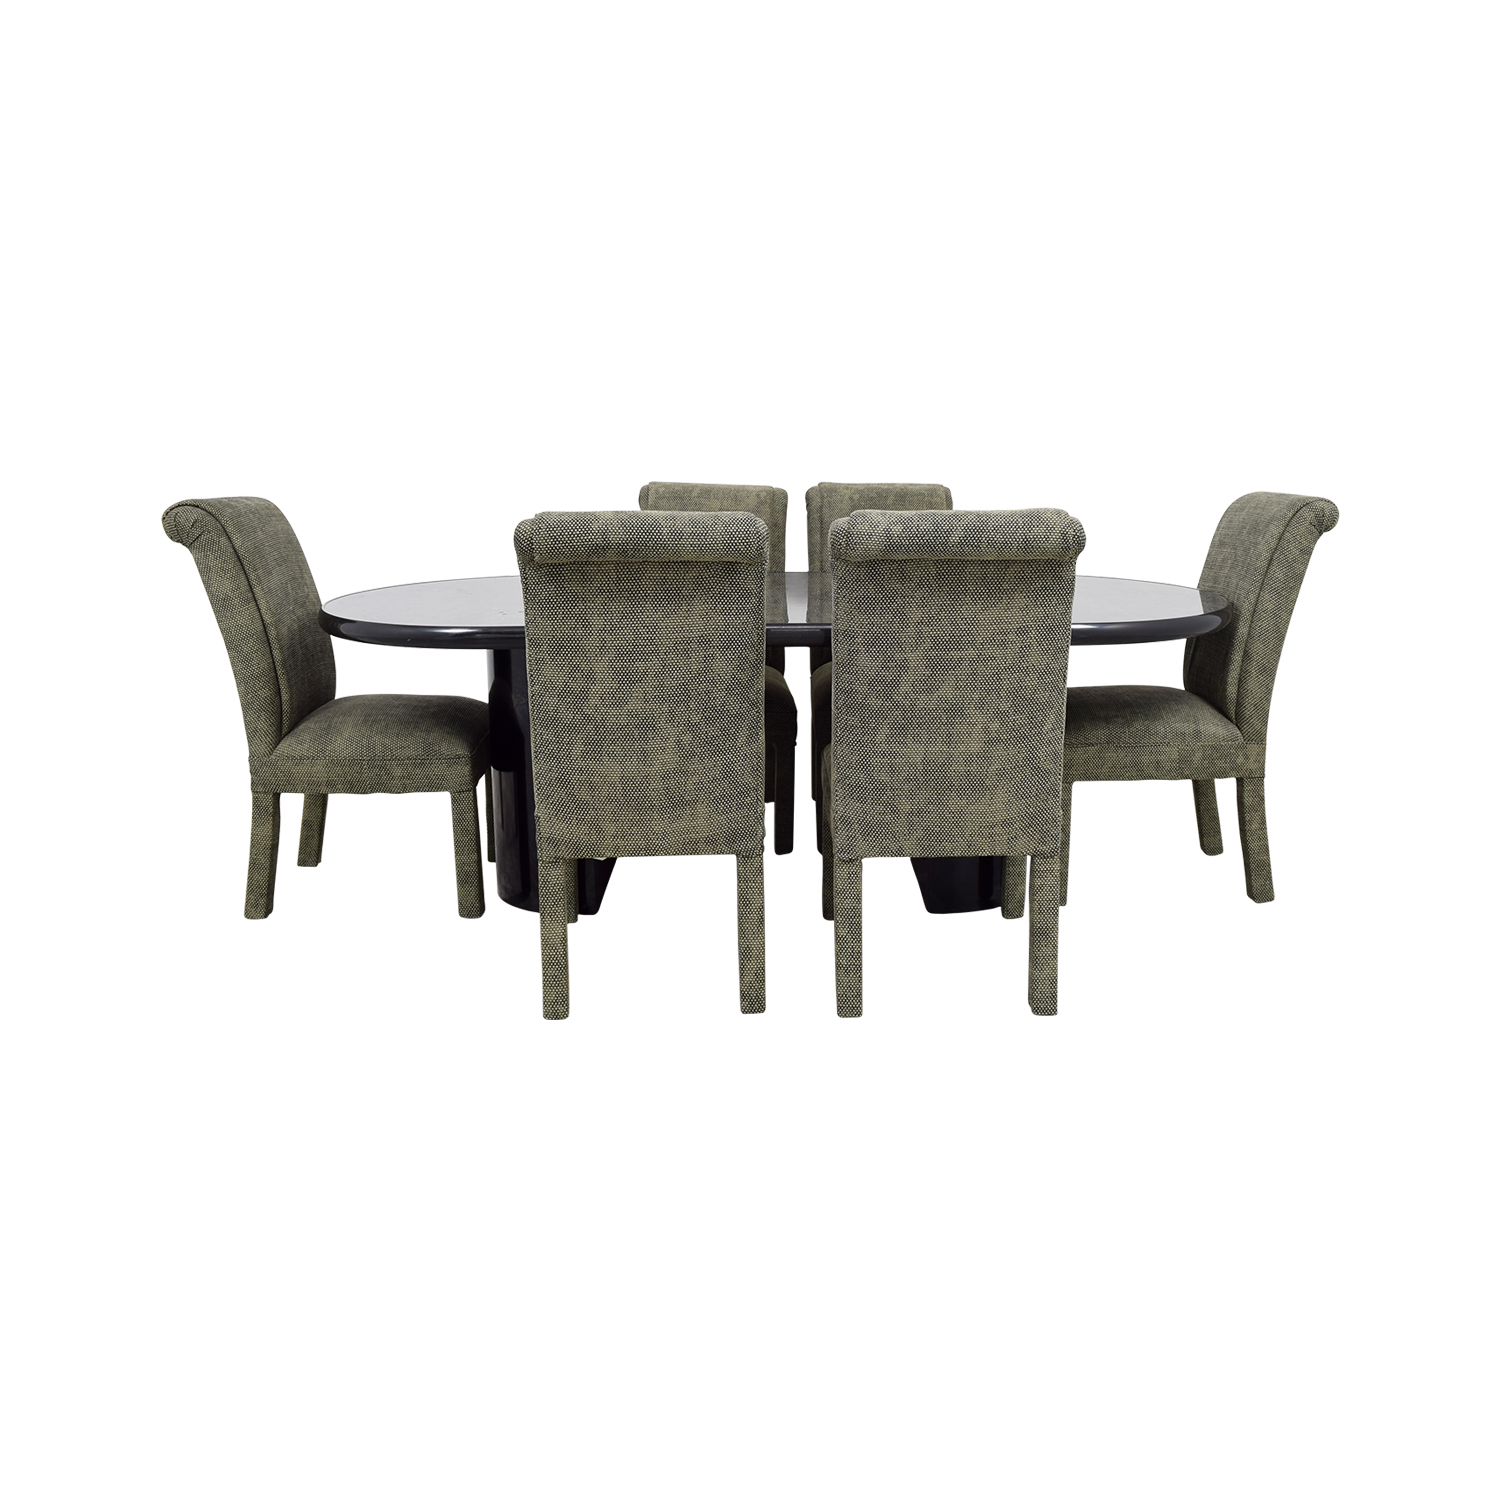 Charcoal Dining Set with Upholstered Chairs used